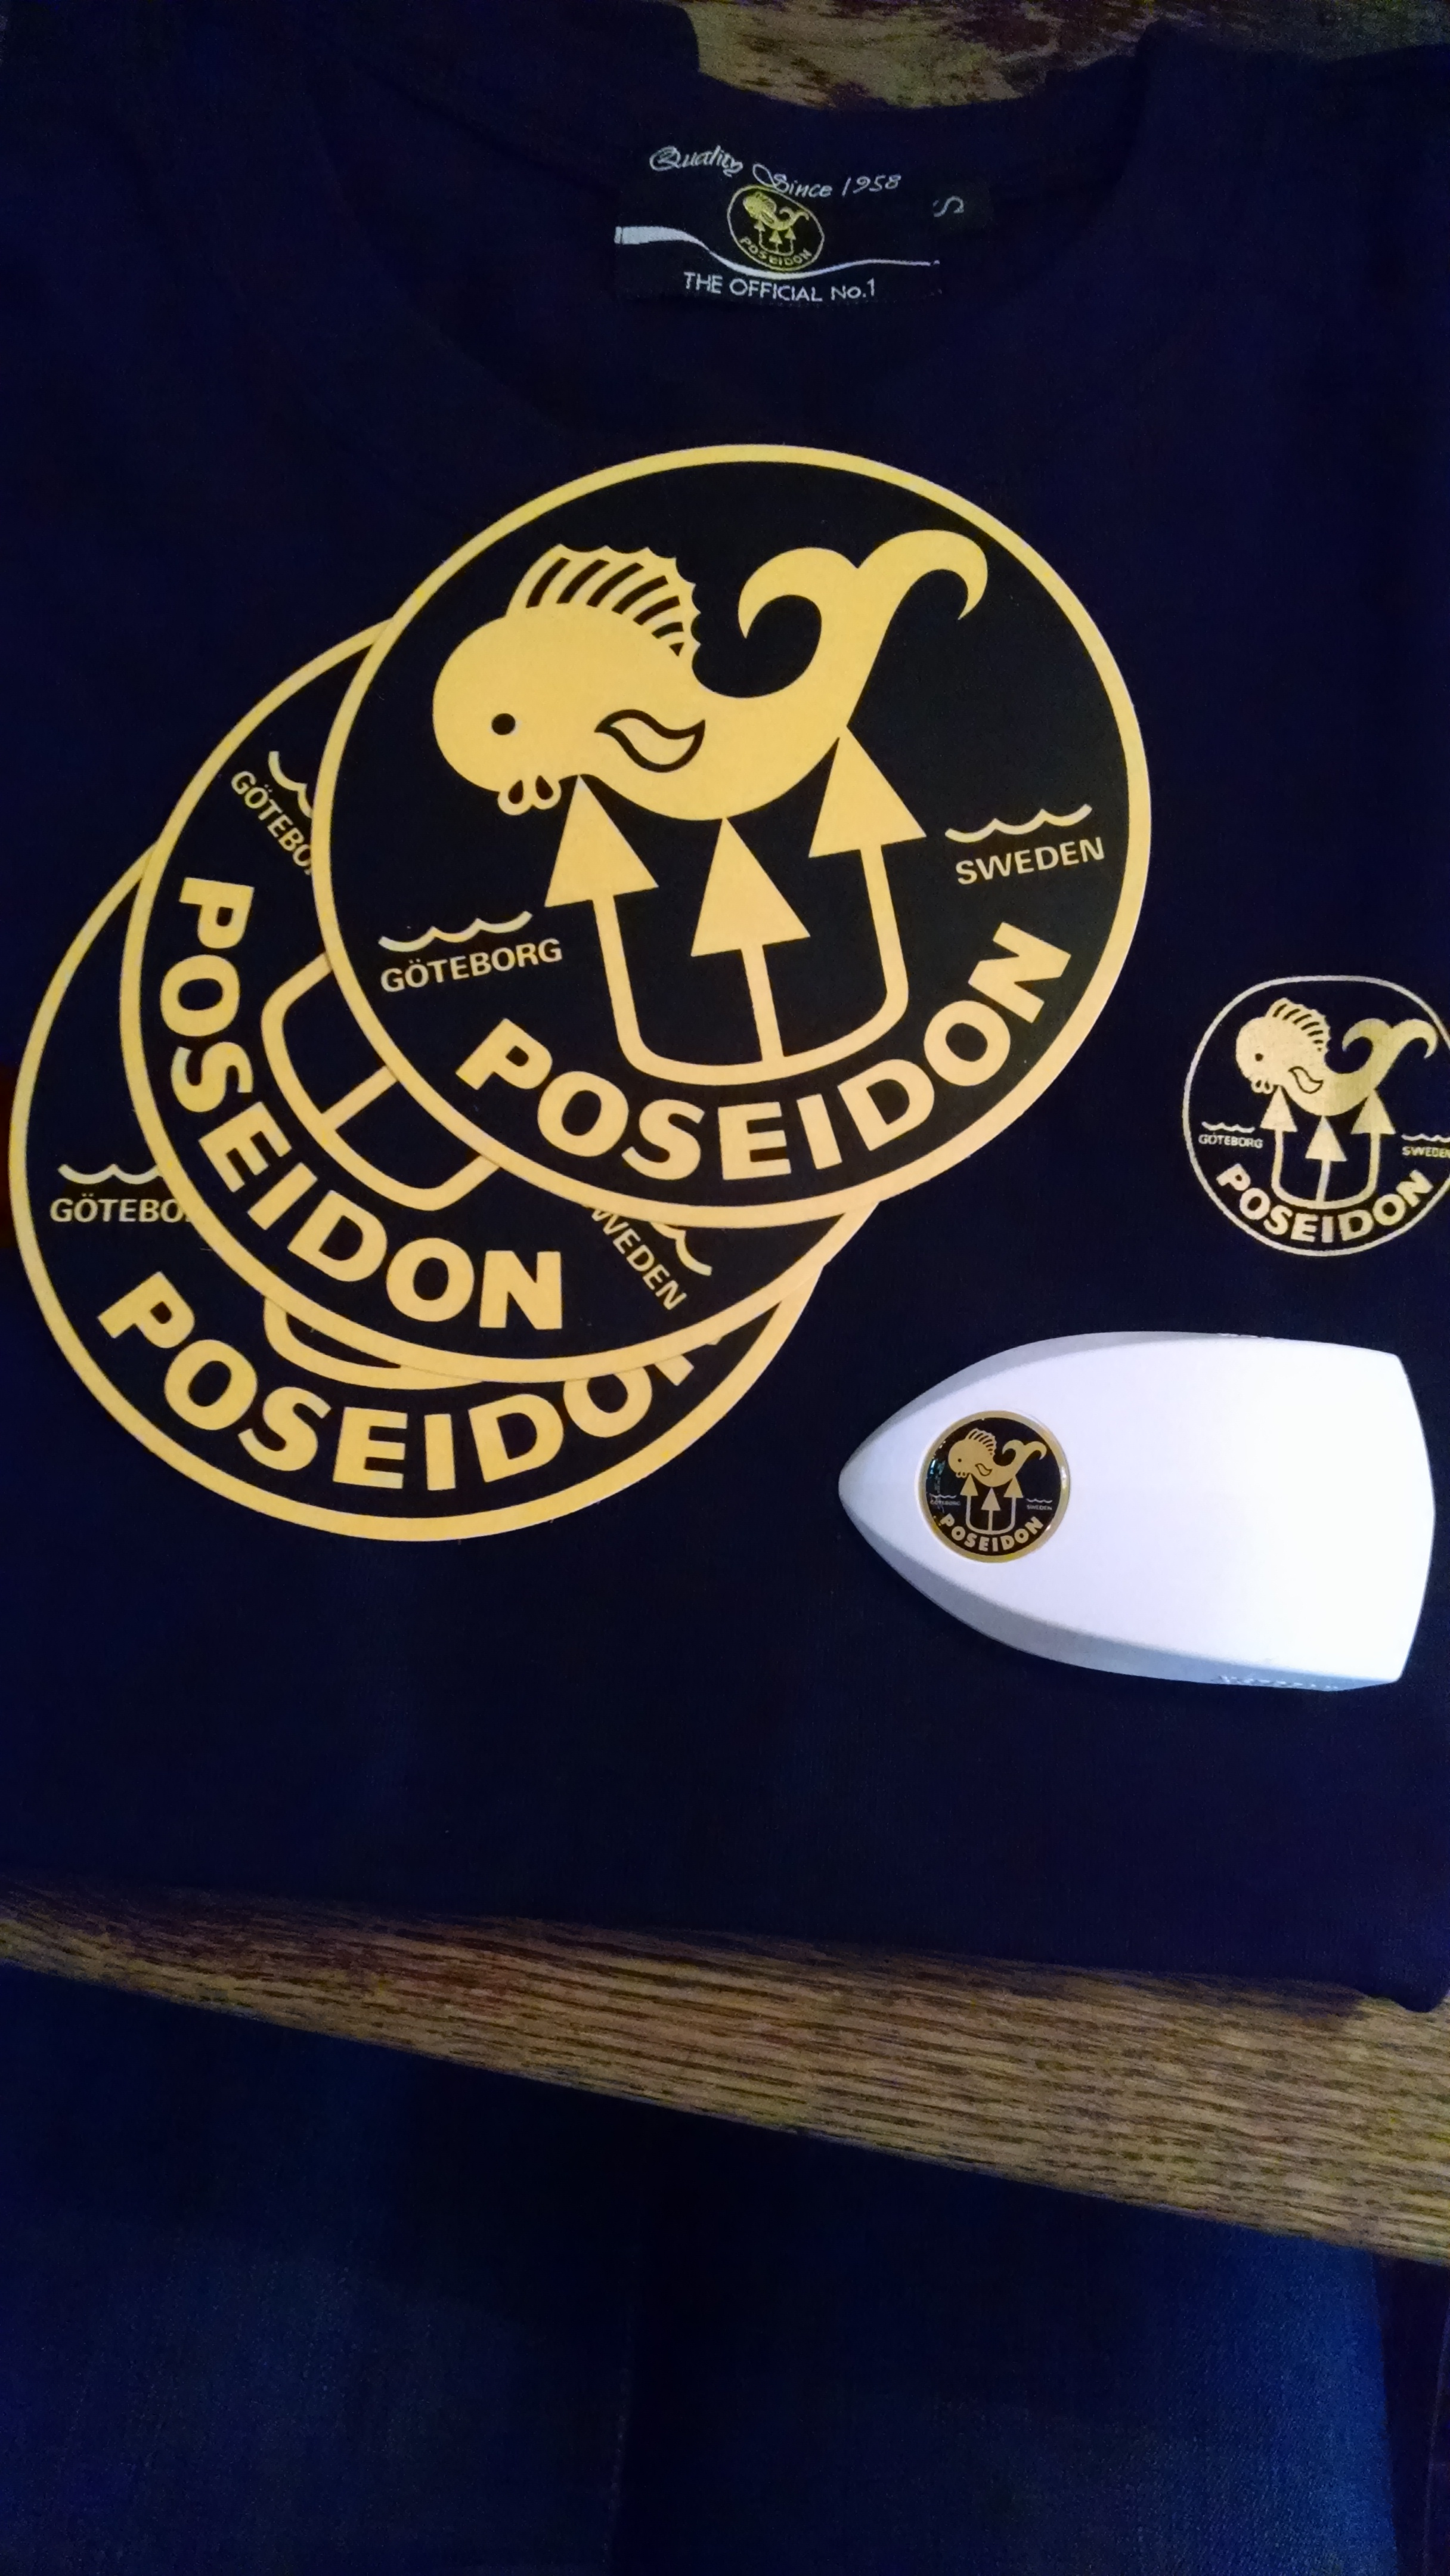 Awesome swag from Poseidon